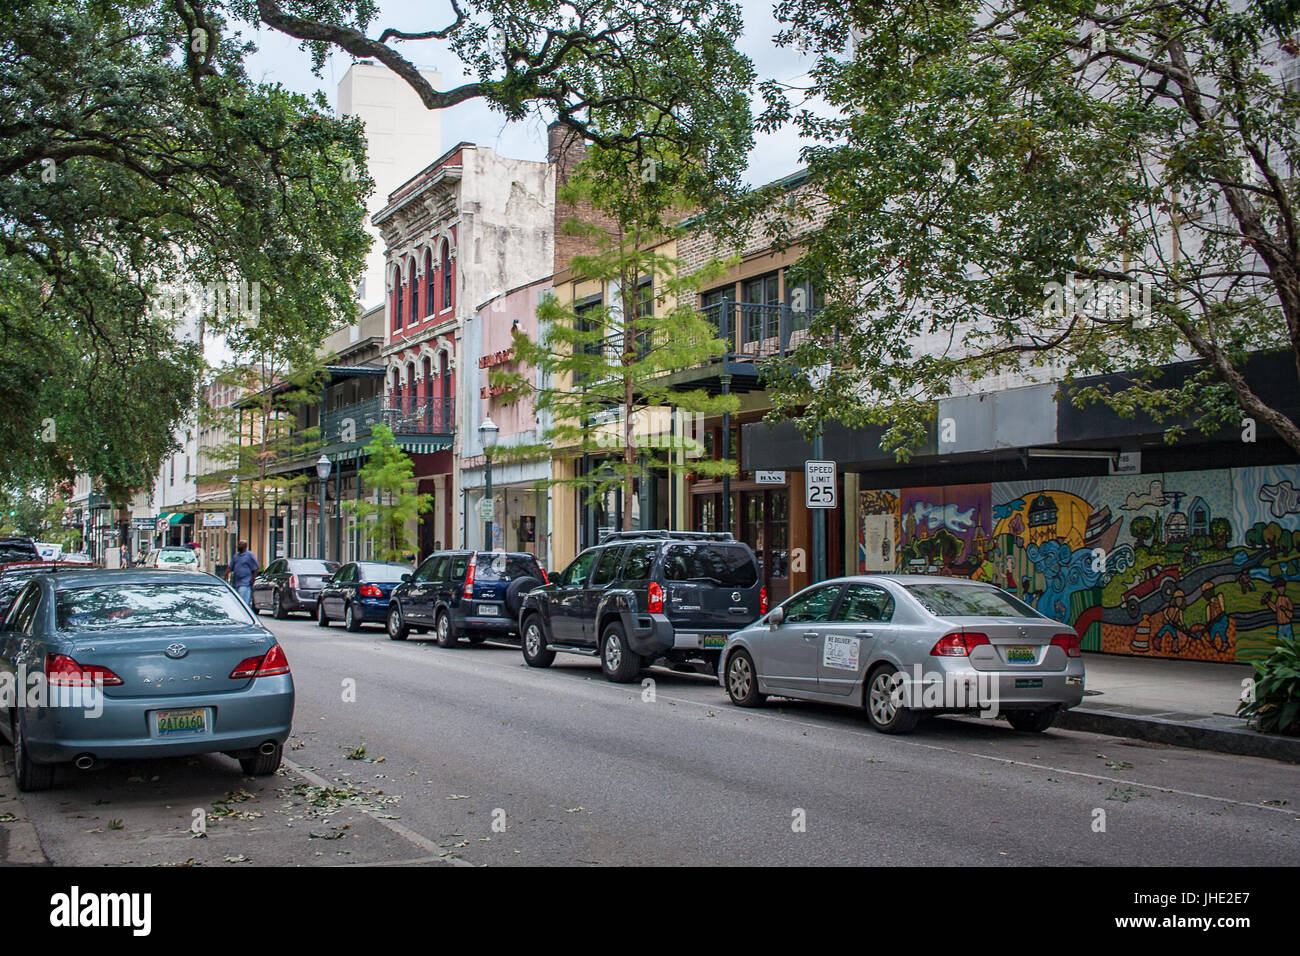 July 2017 Mobile Al Restaurants And Shops In Downtown